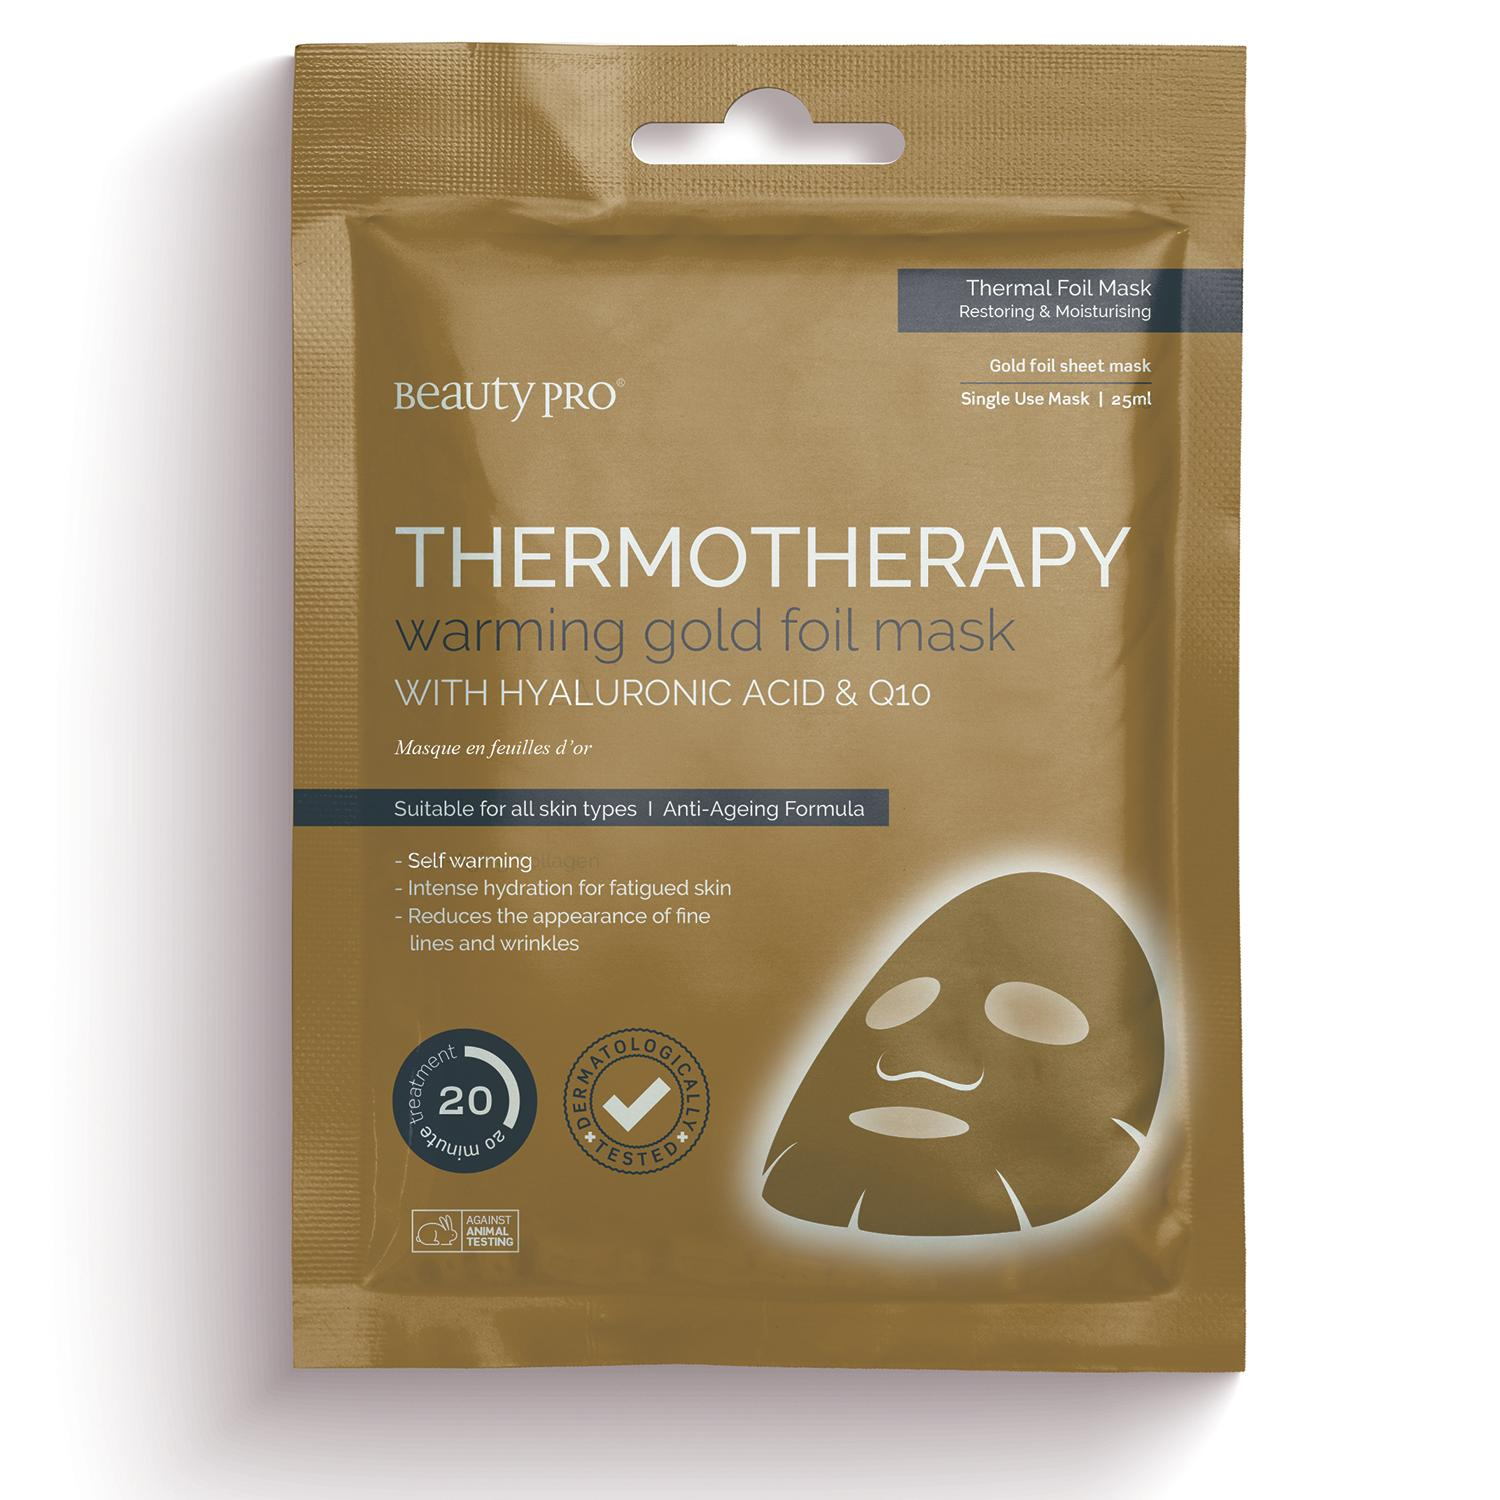 THERMOTHEAPY Warming Gold Foil Mask with Hyaluronic Acid & Q10 25ml